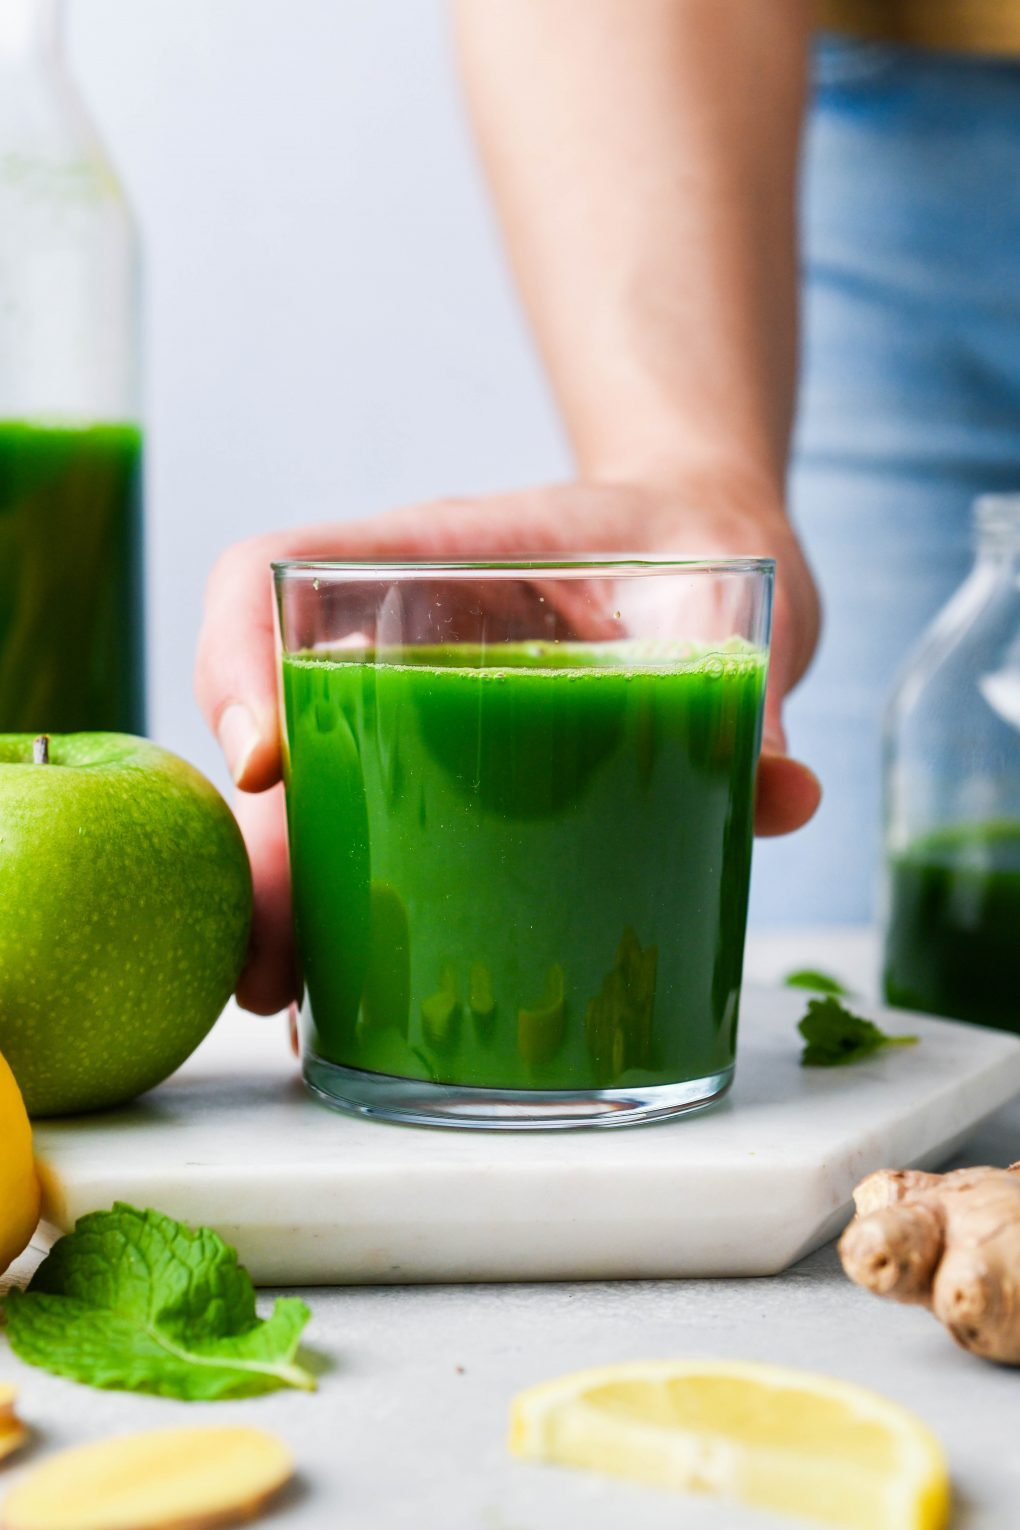 Straight on shot of a hand holding a small glass of green juice. On a light background surrounded by a green apple, a sliced lemon, ginger, fresh mint, and a few kale leaves.